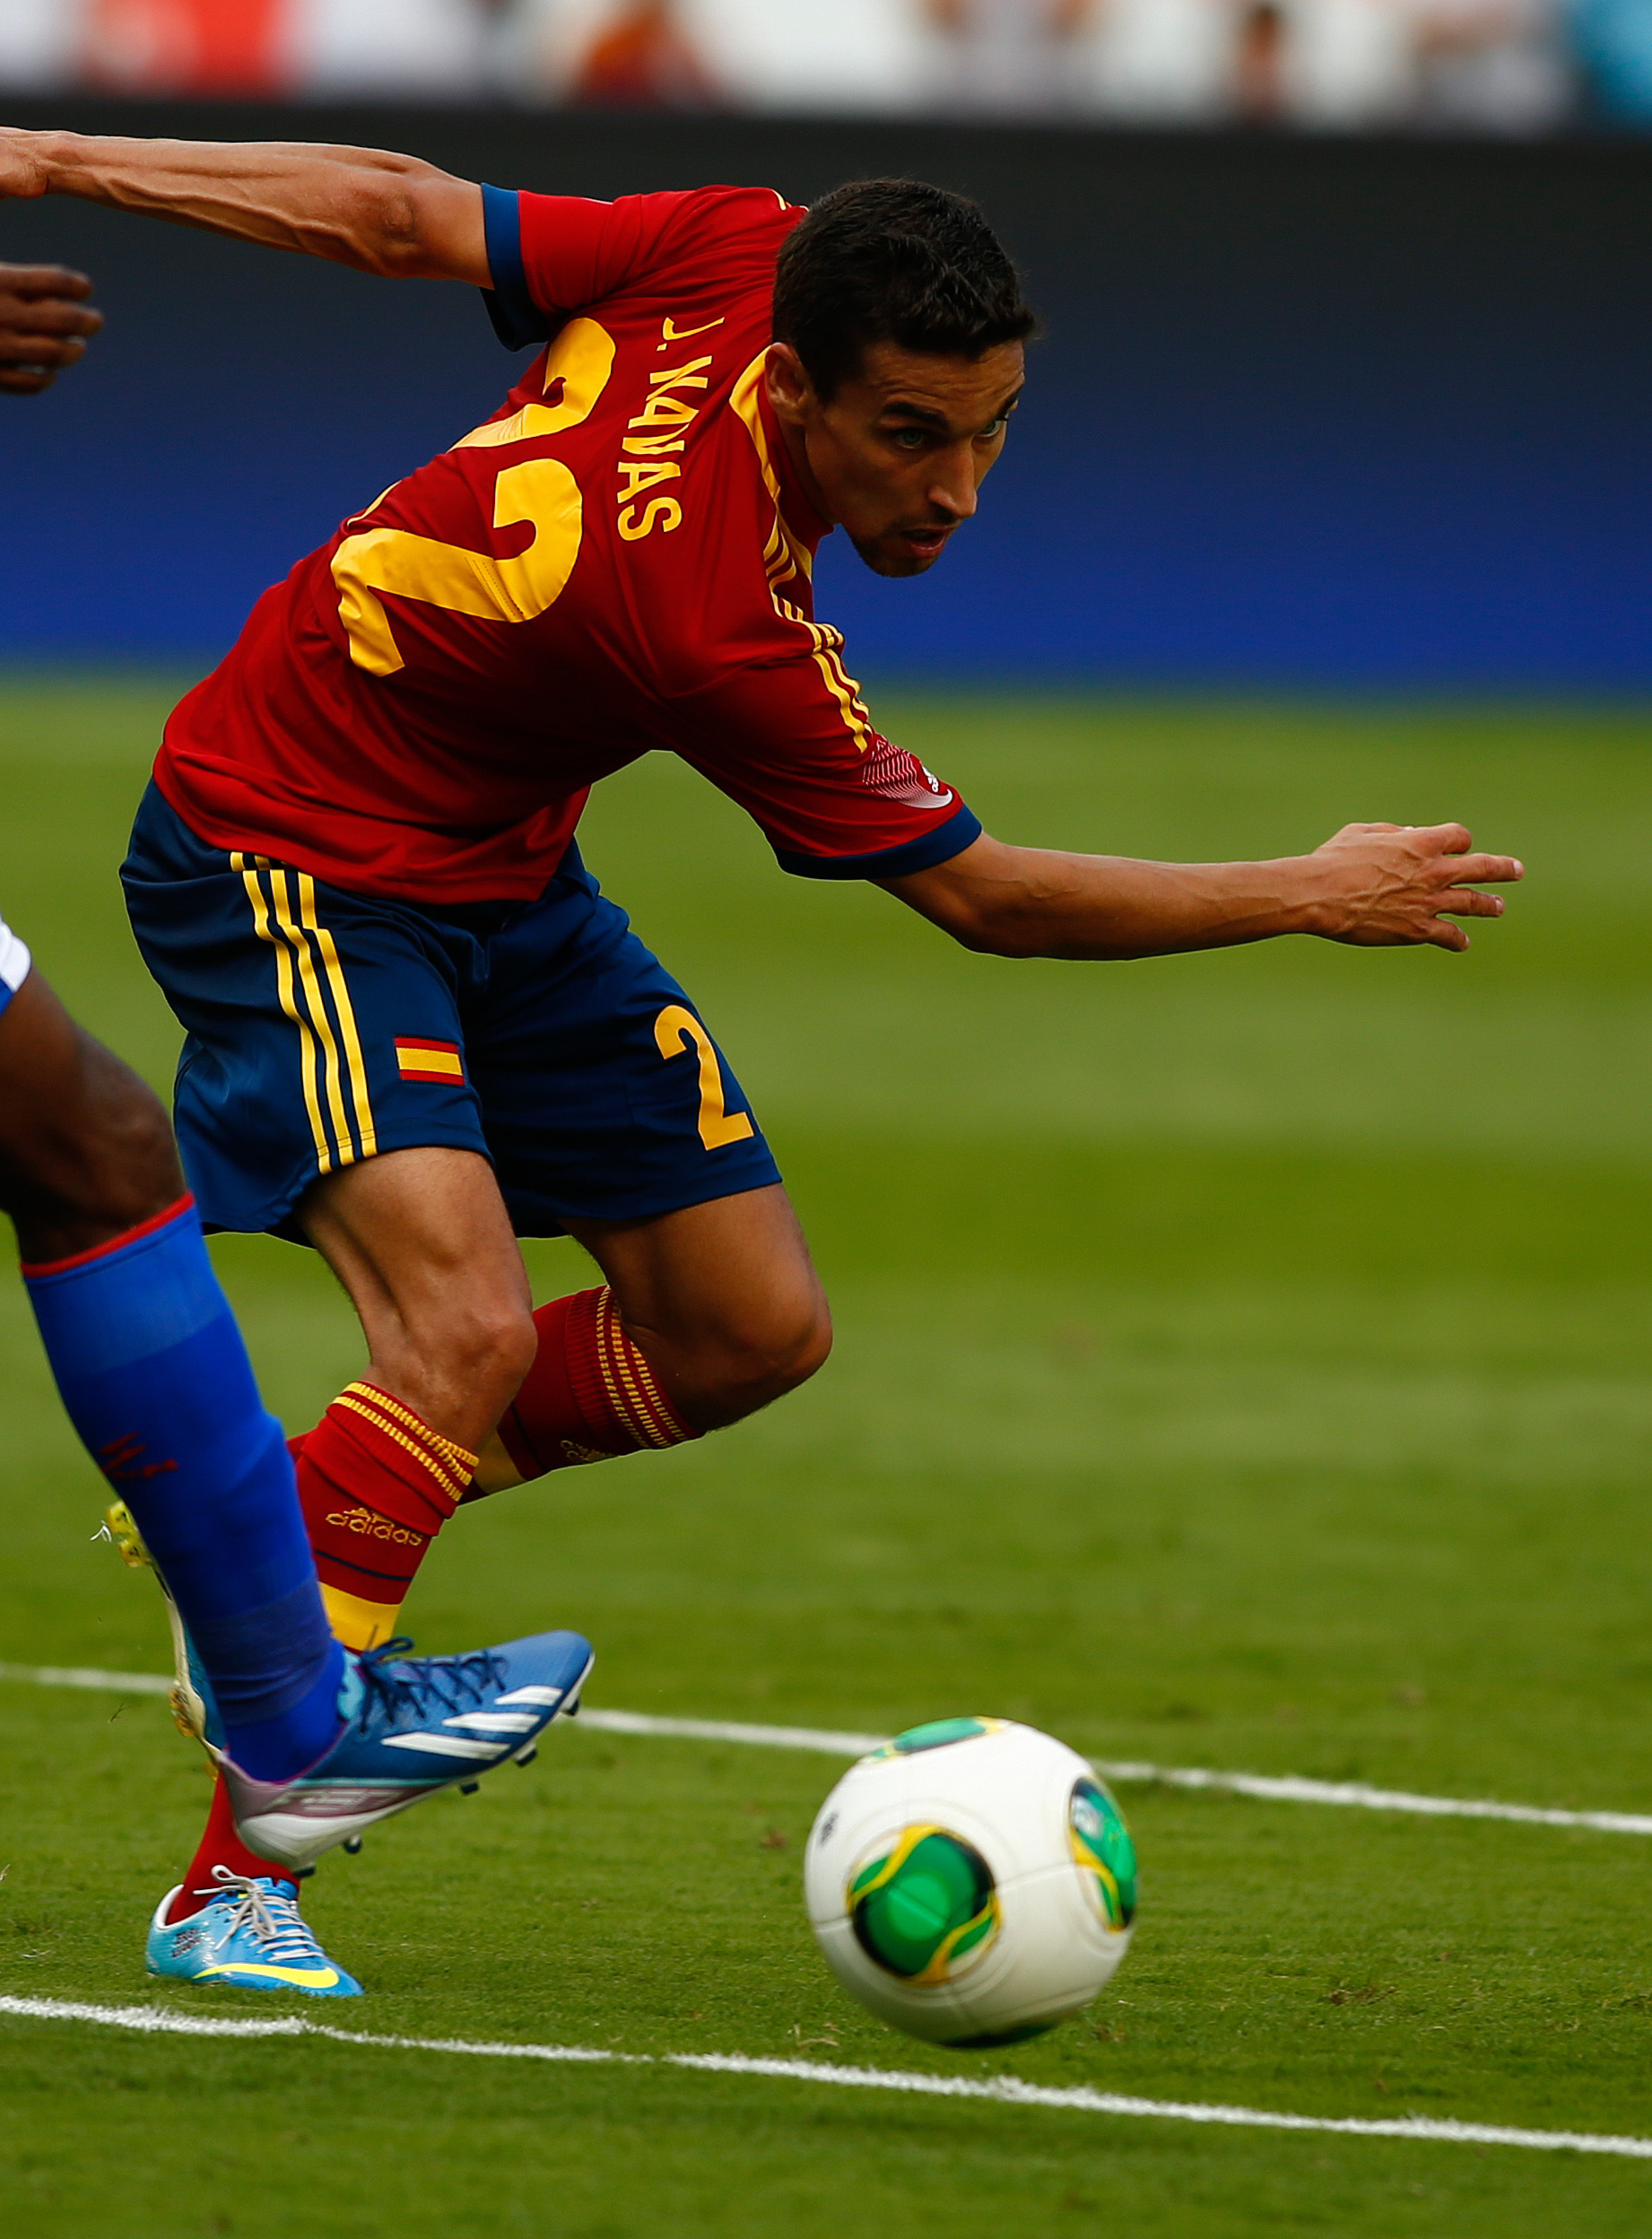 Spain vs. Chile: Preview and TV schedule